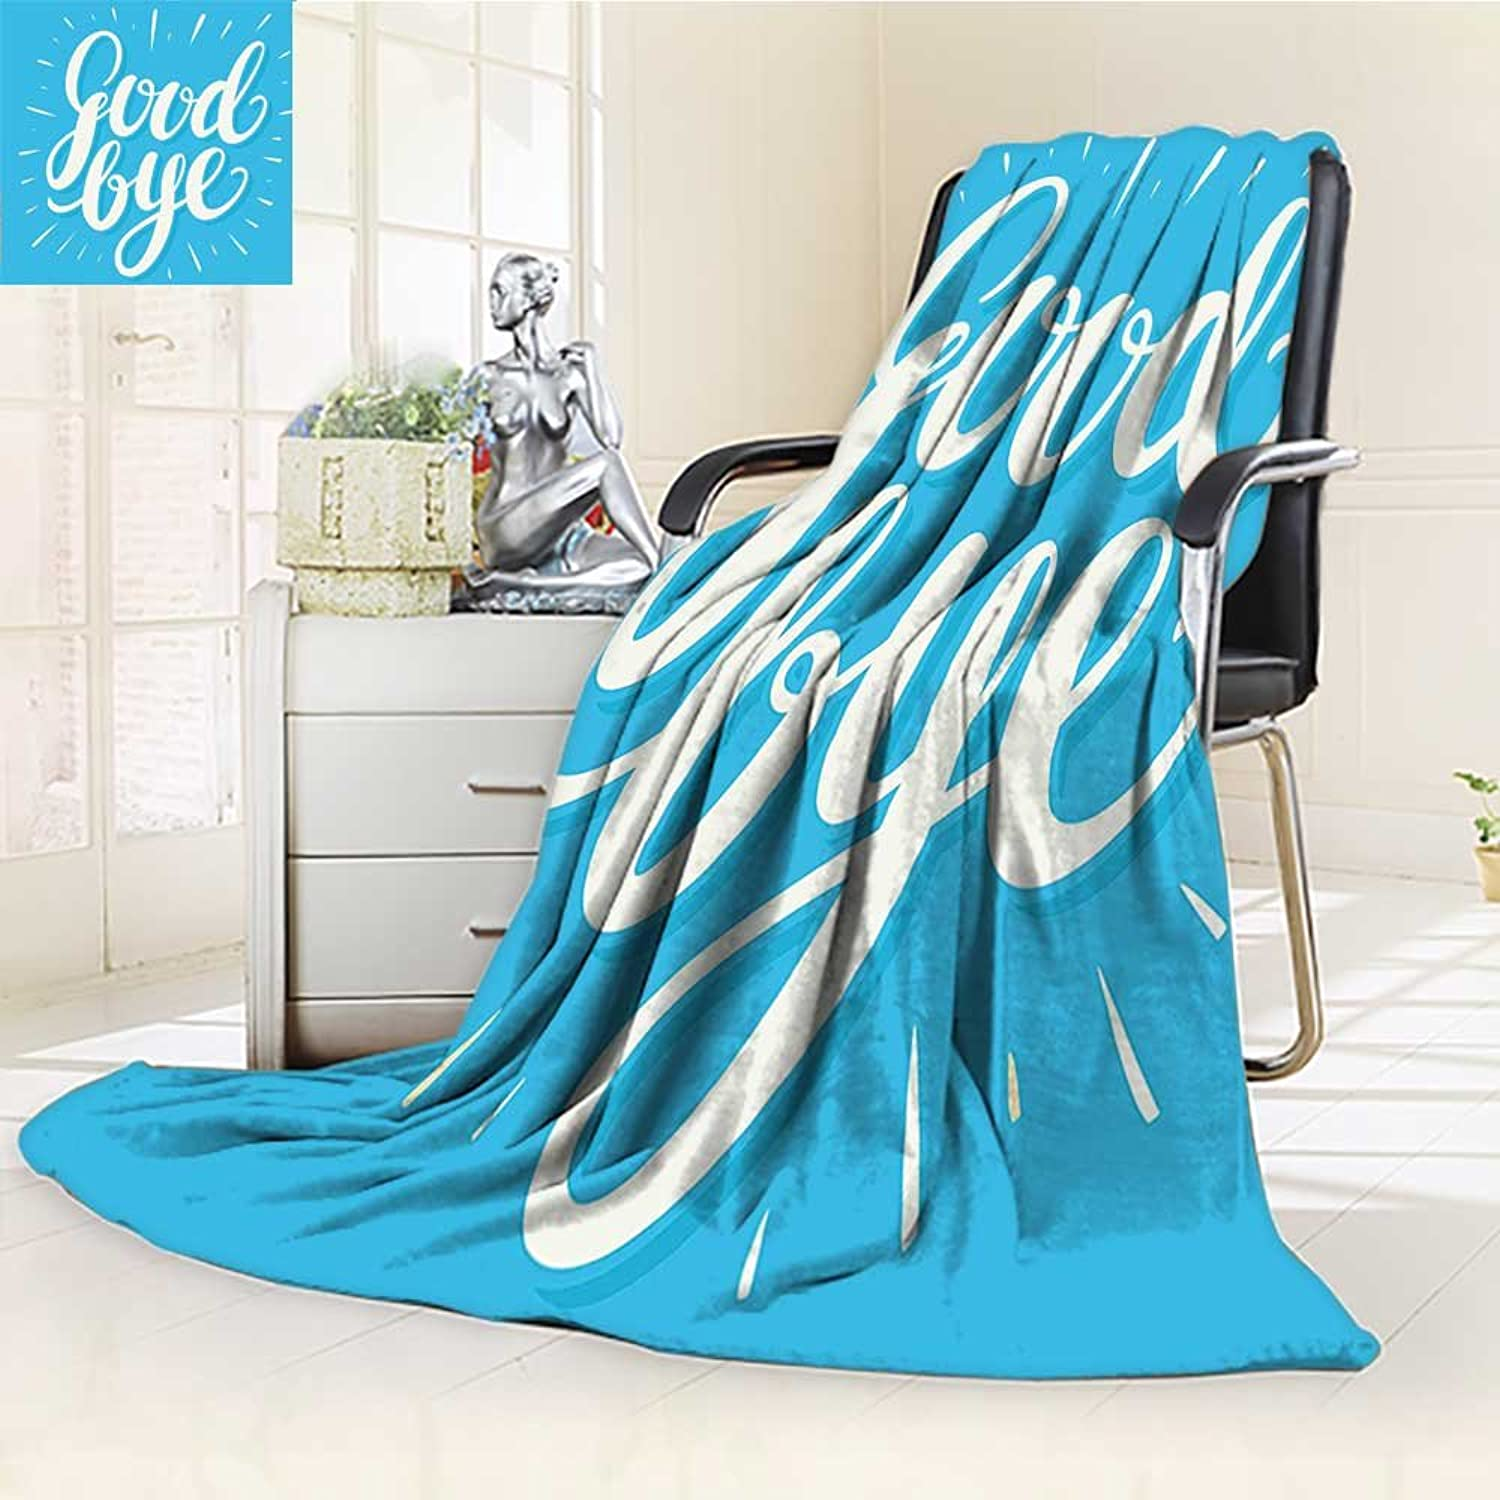 AmaPark Digital Printing Blanket BHand Lettering on bluee Background Wishful Words bluee White Summer Quilt Comforter